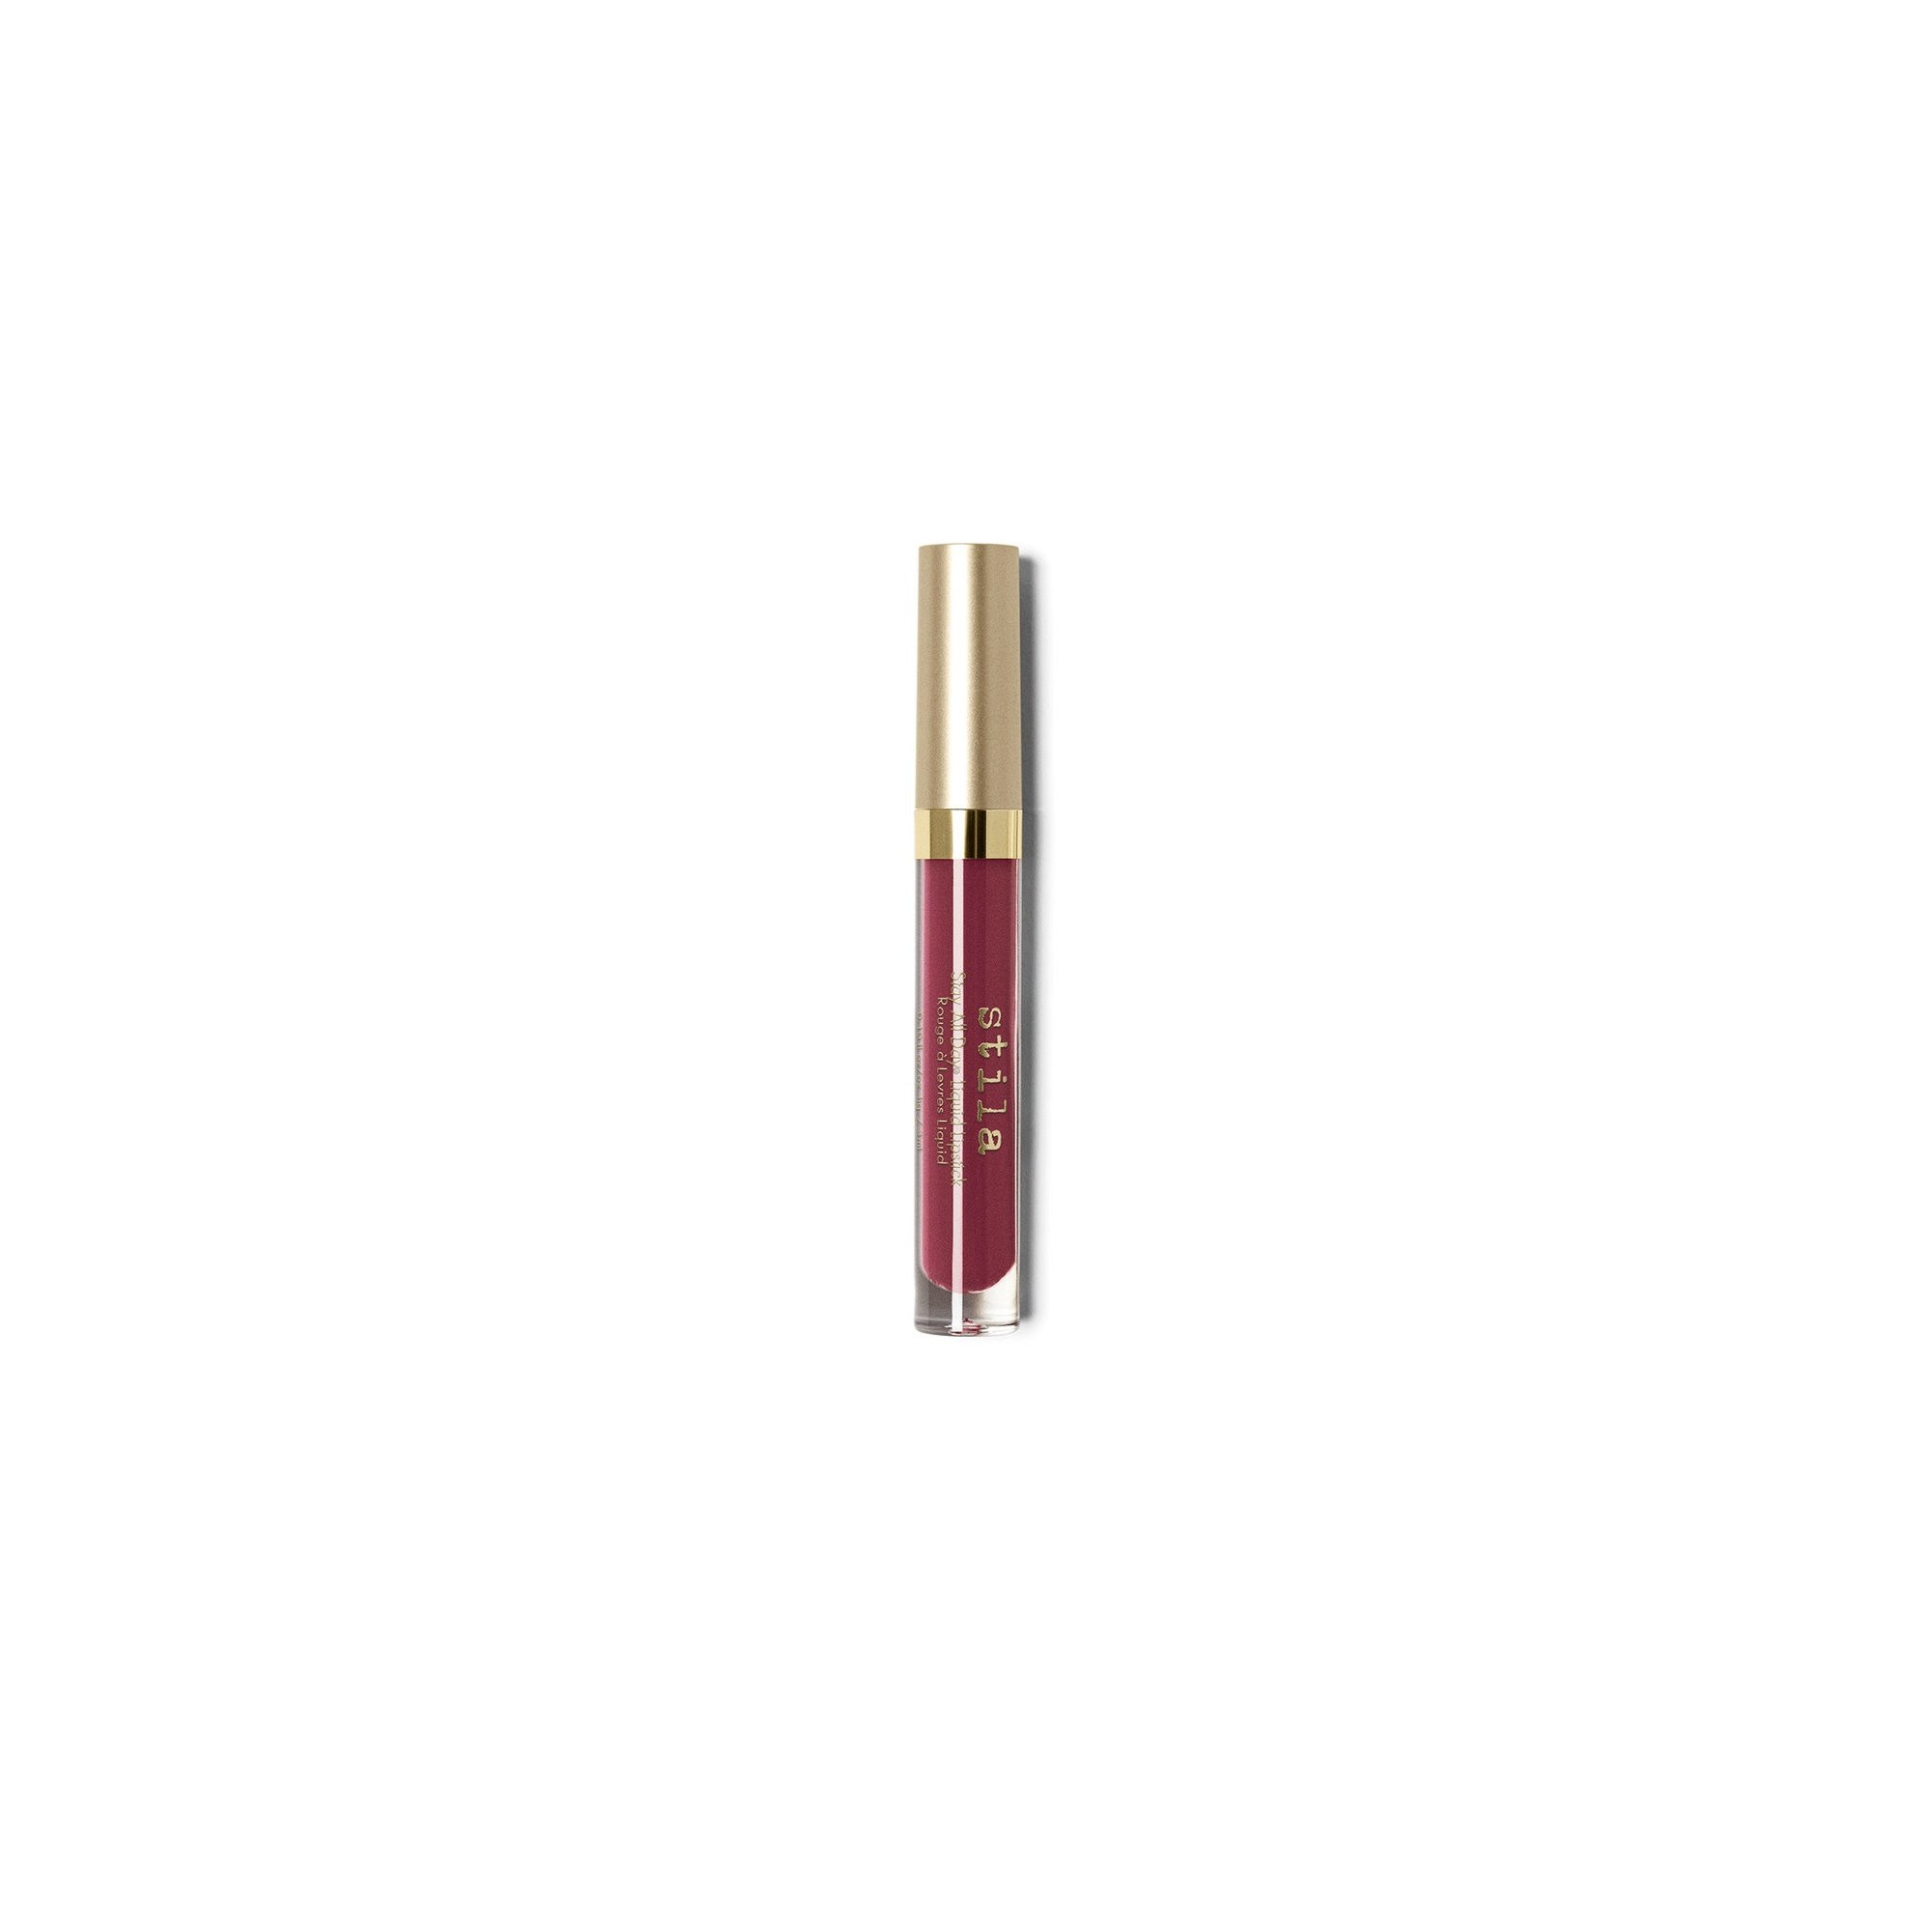 Stila Stay All Day Liquid Lipstick Bacca